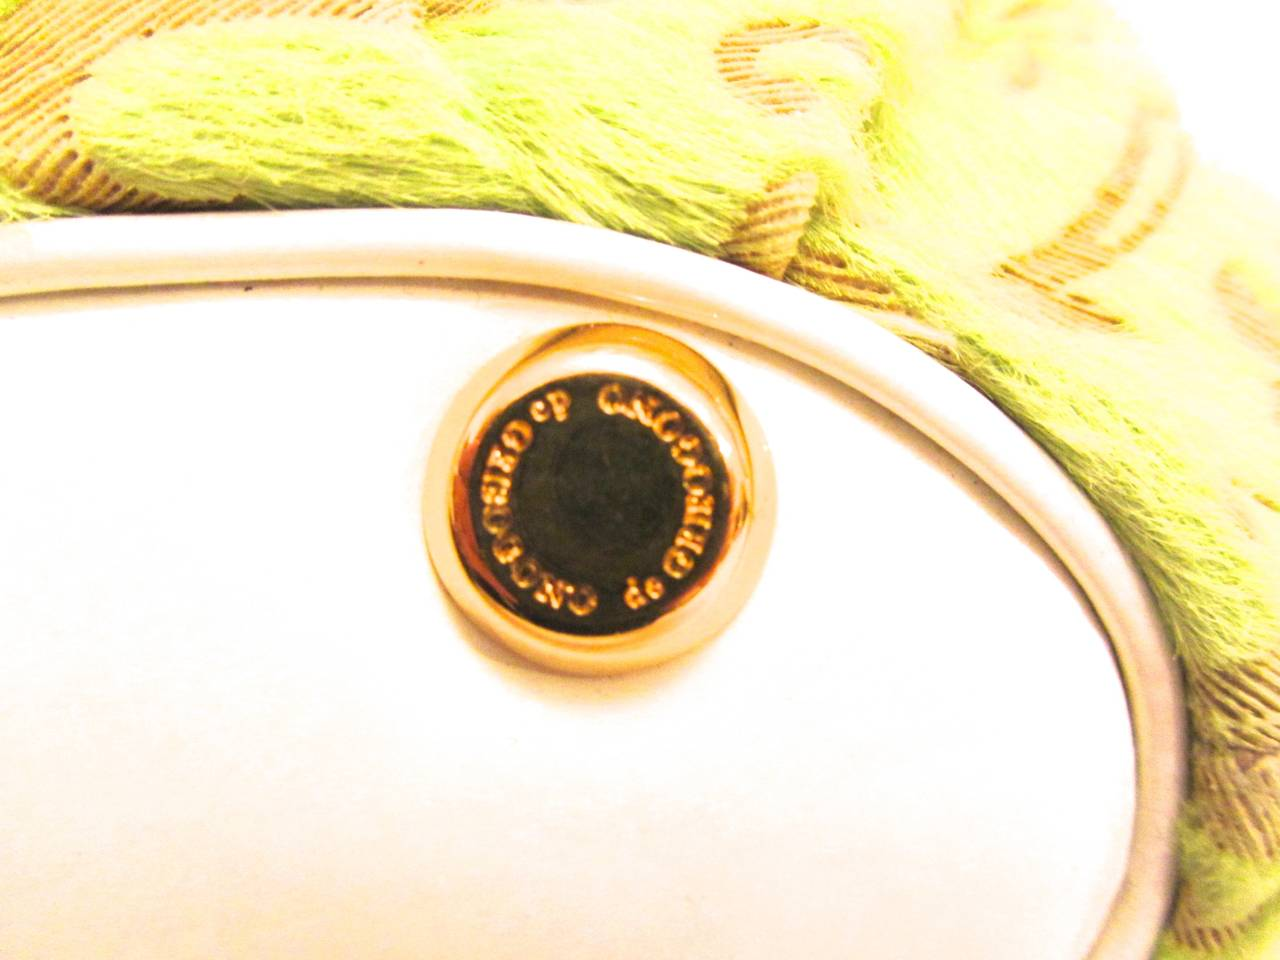 De Grisogono Geneve Couture Hand Bag - Green, White, and Purple For Sale 3